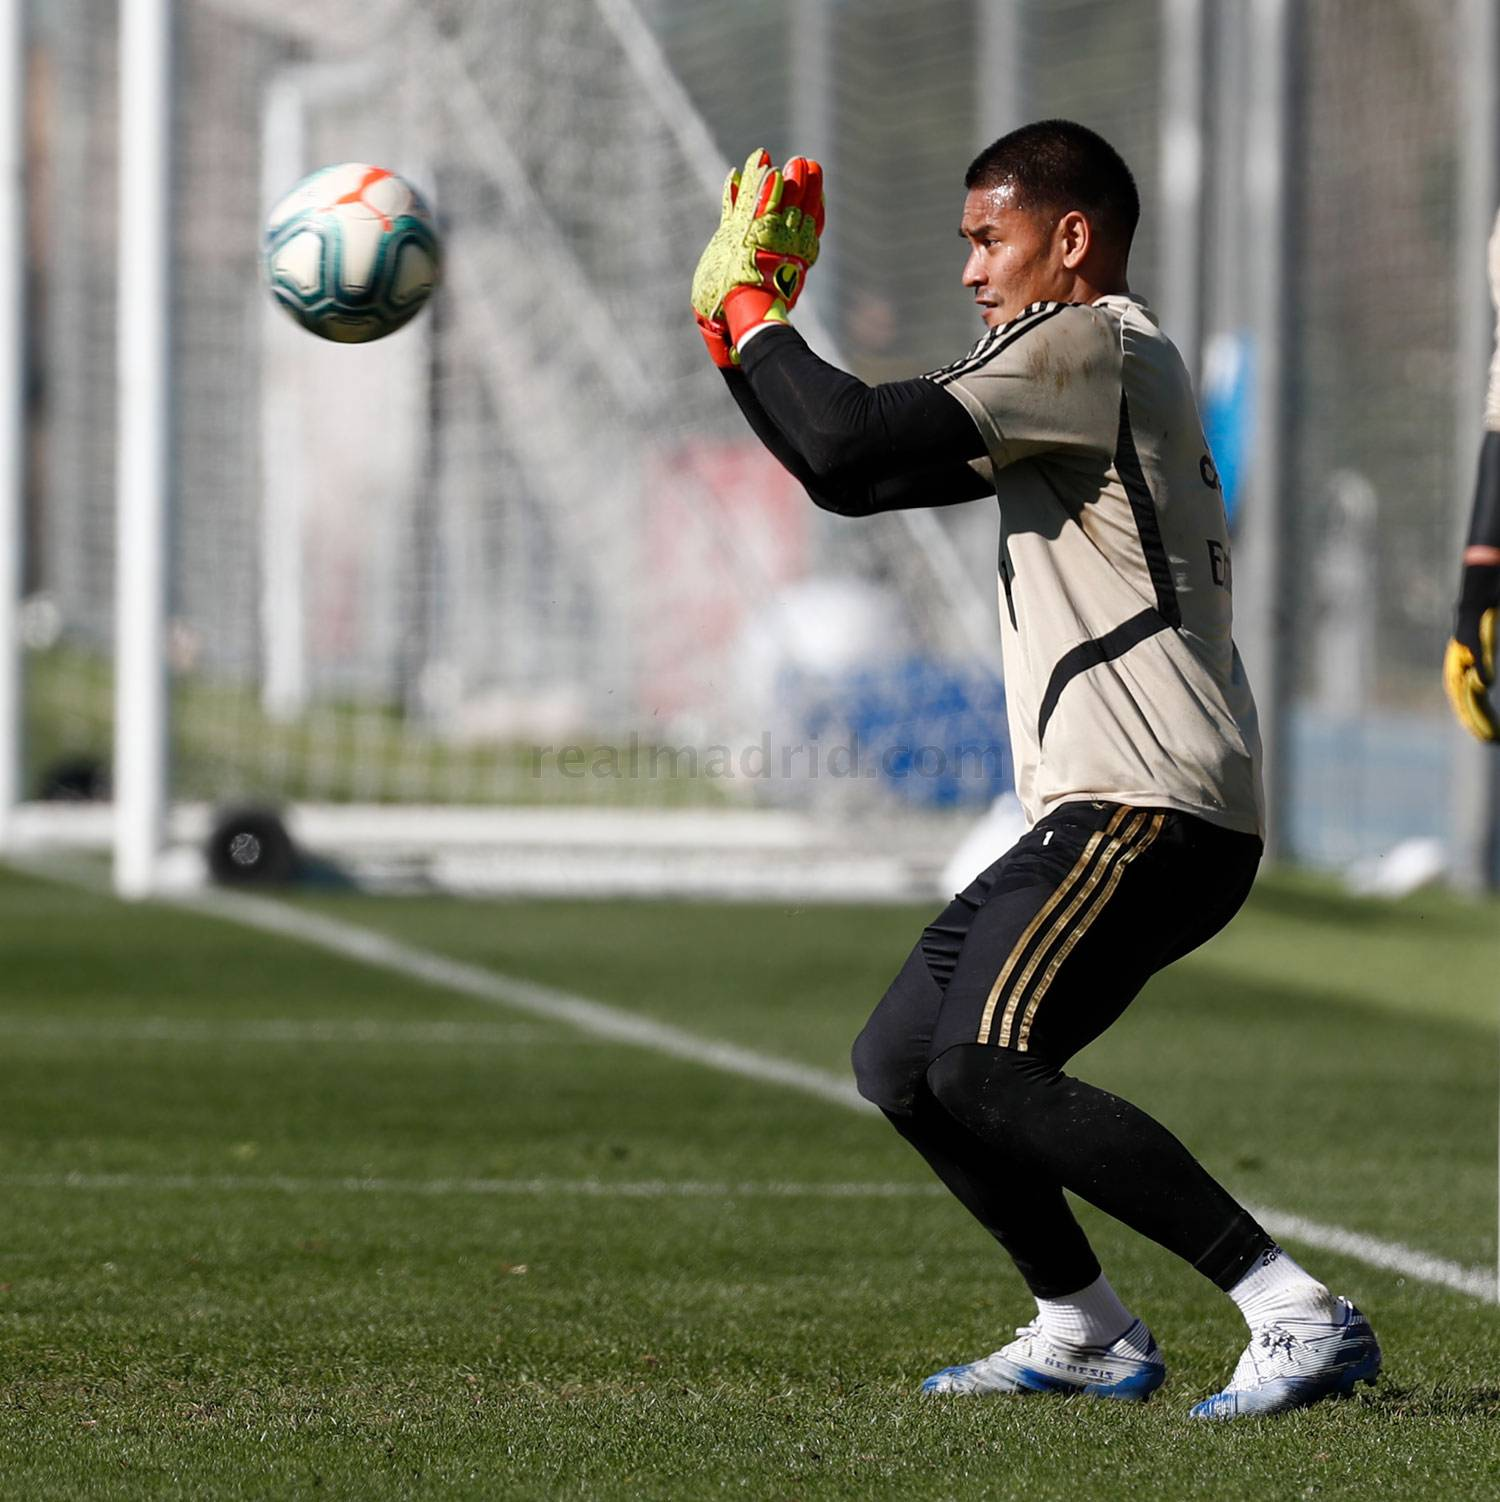 Real Madrid - Entrenamiento del Real Madrid  - 21-02-2020